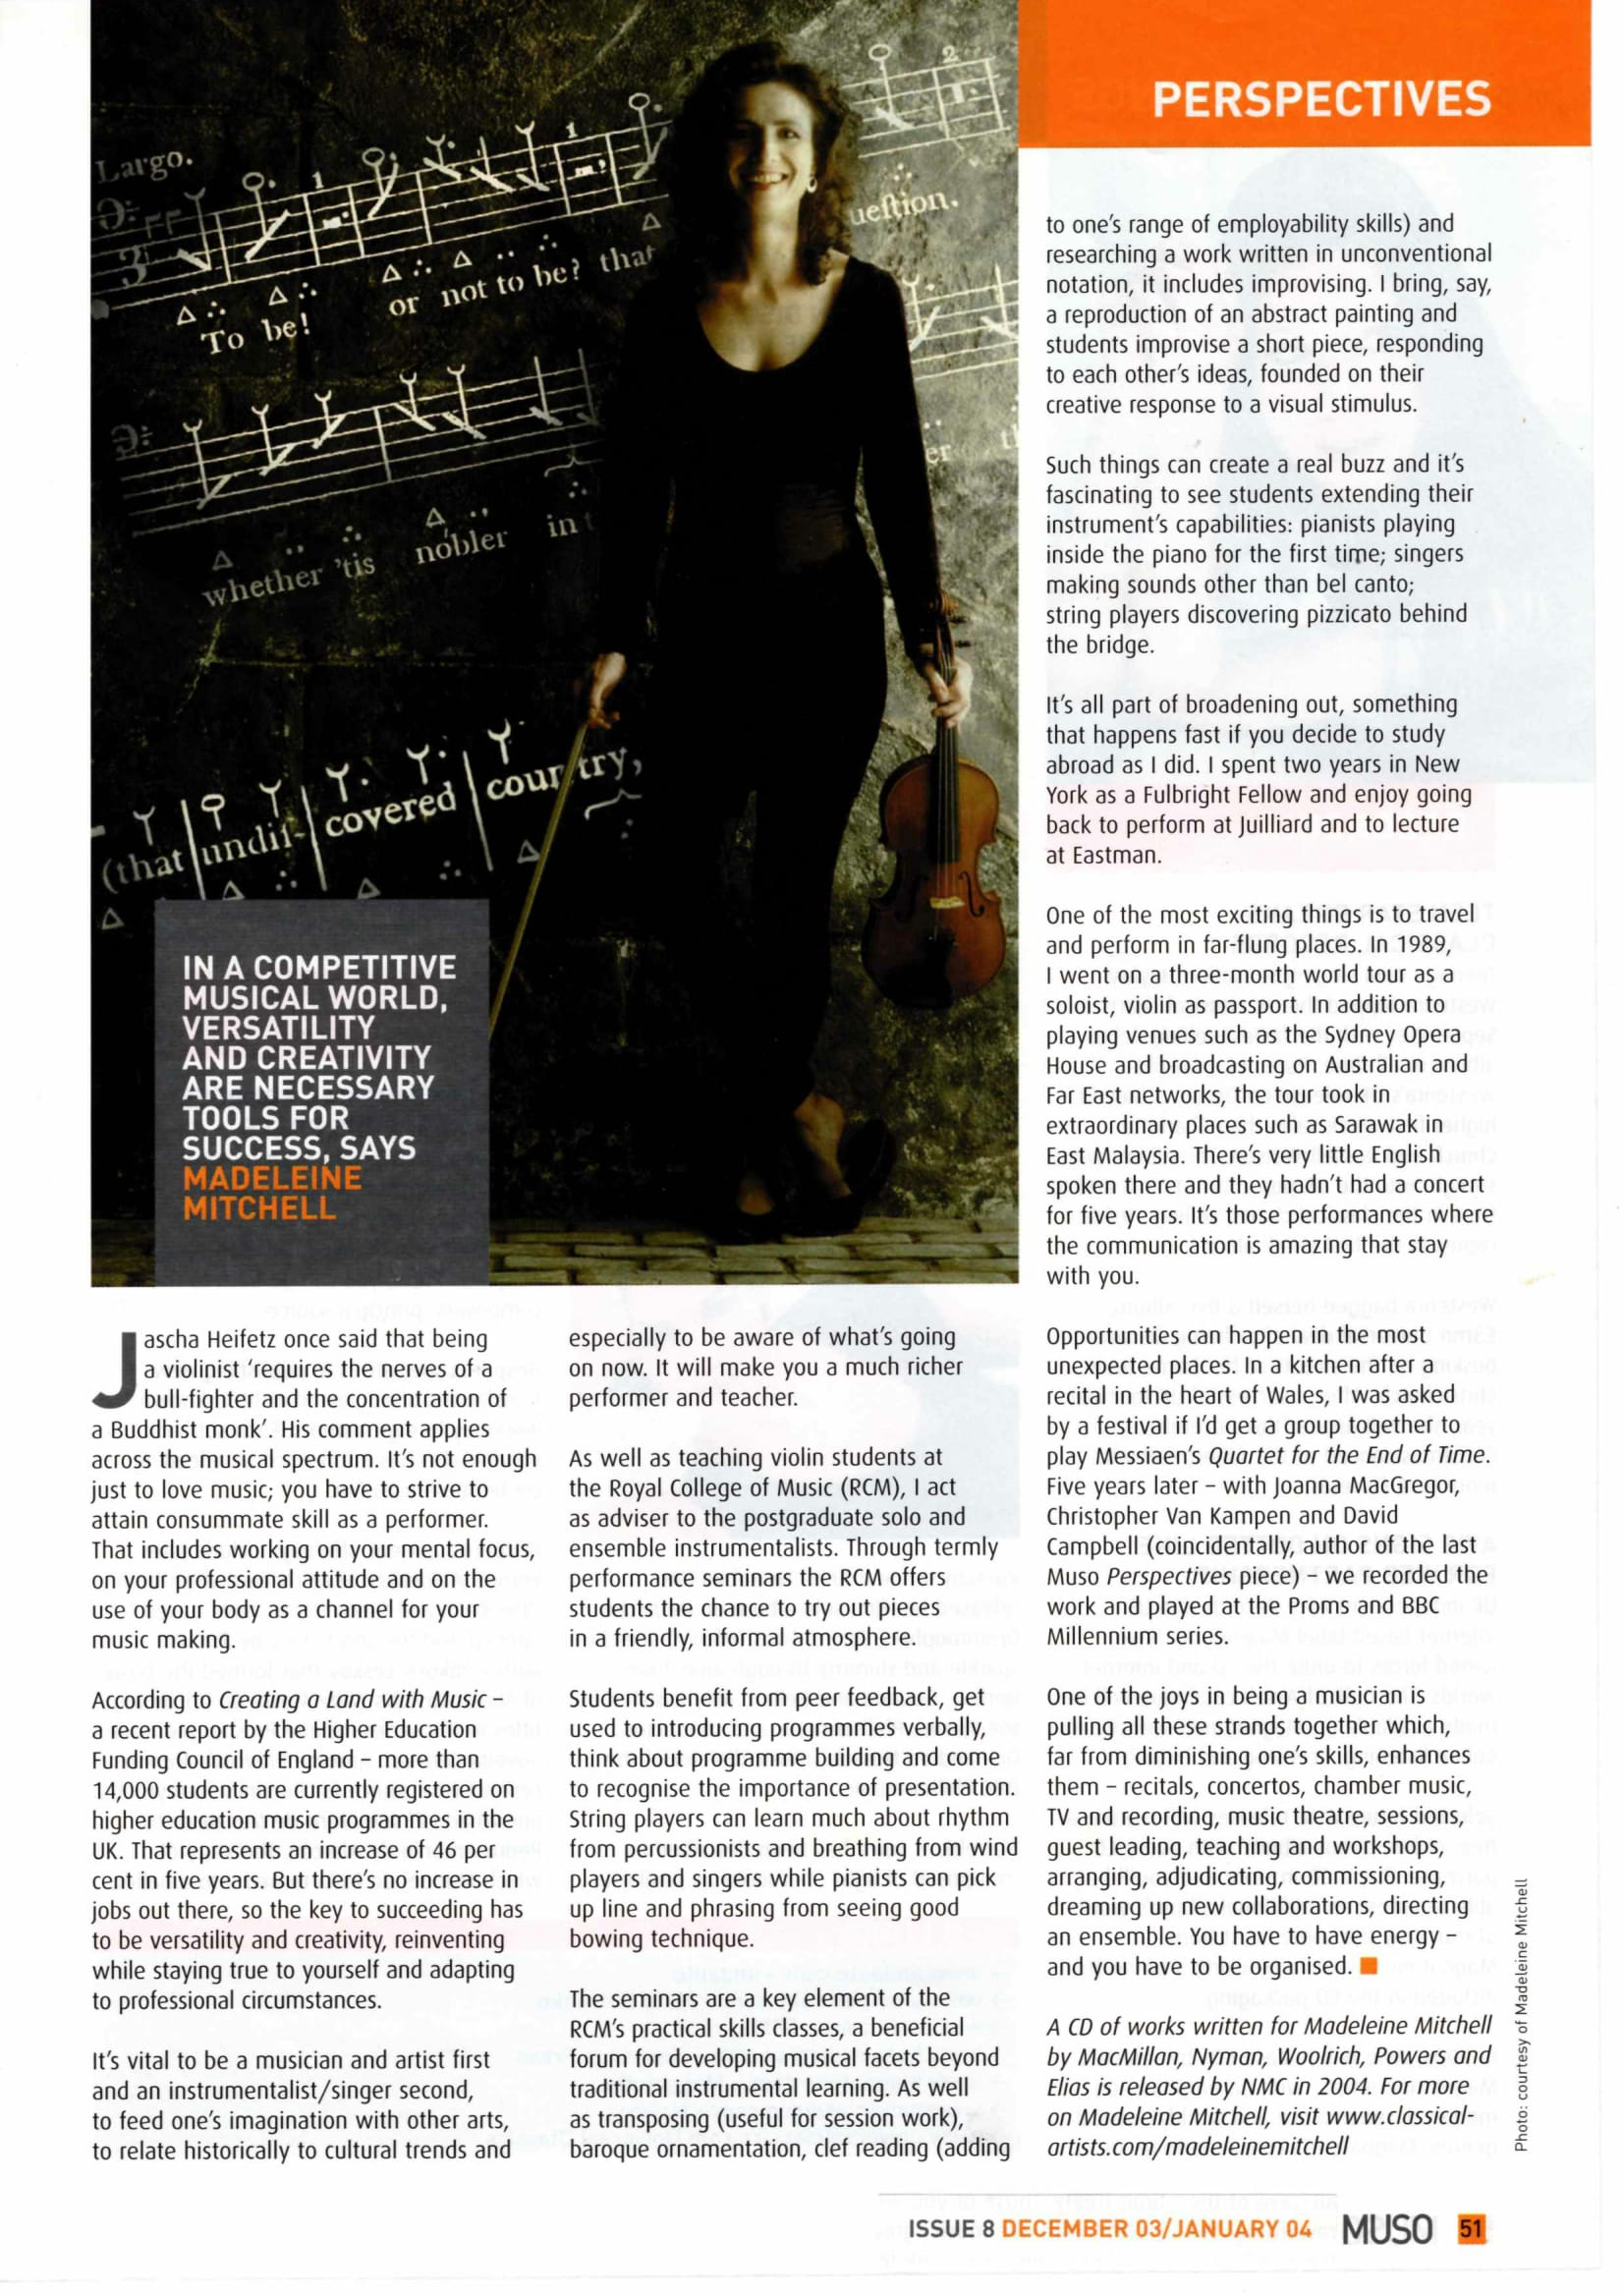 MUSO article by MM